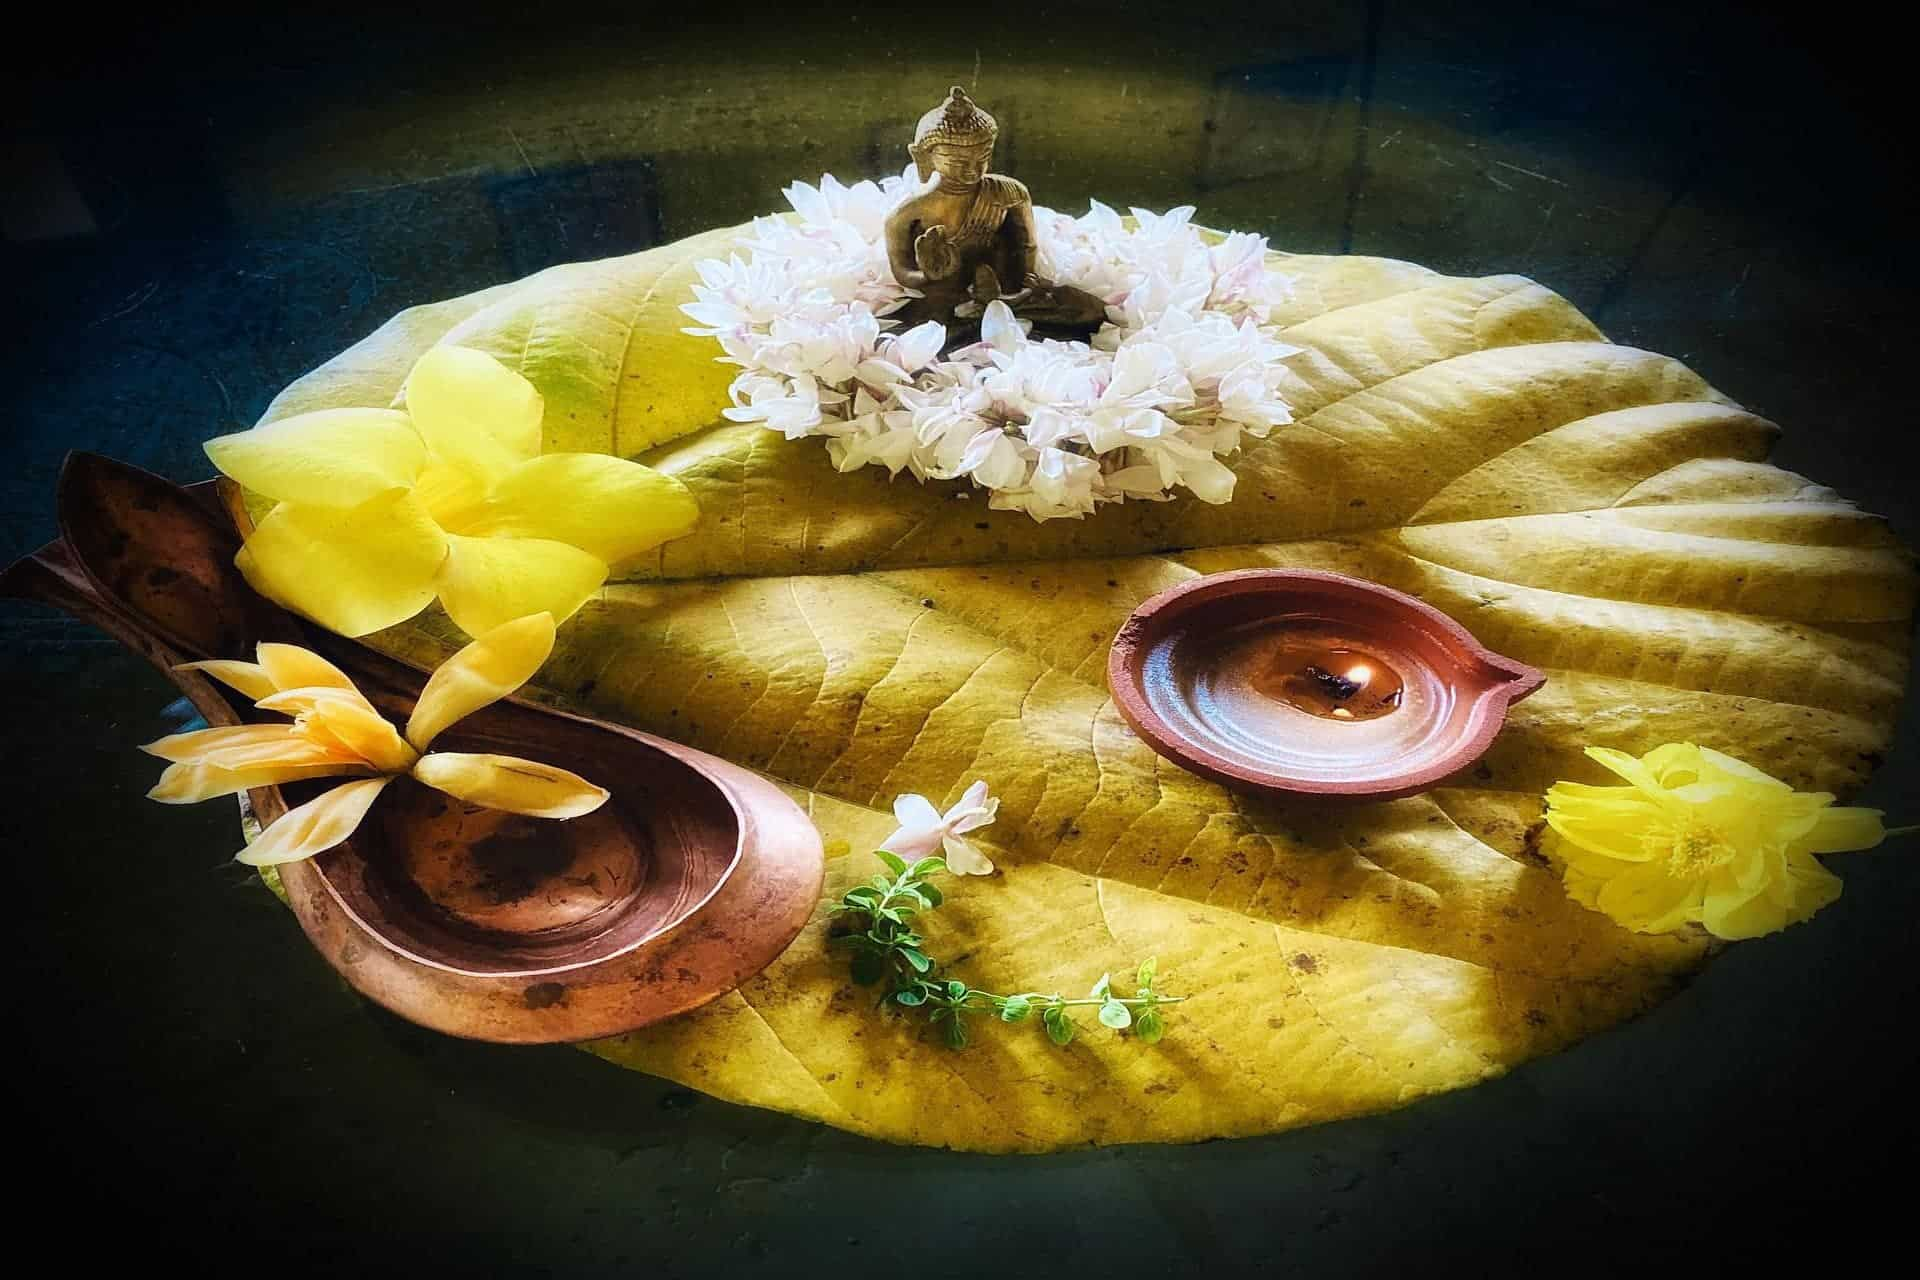 A puja offering with lamps and flowers